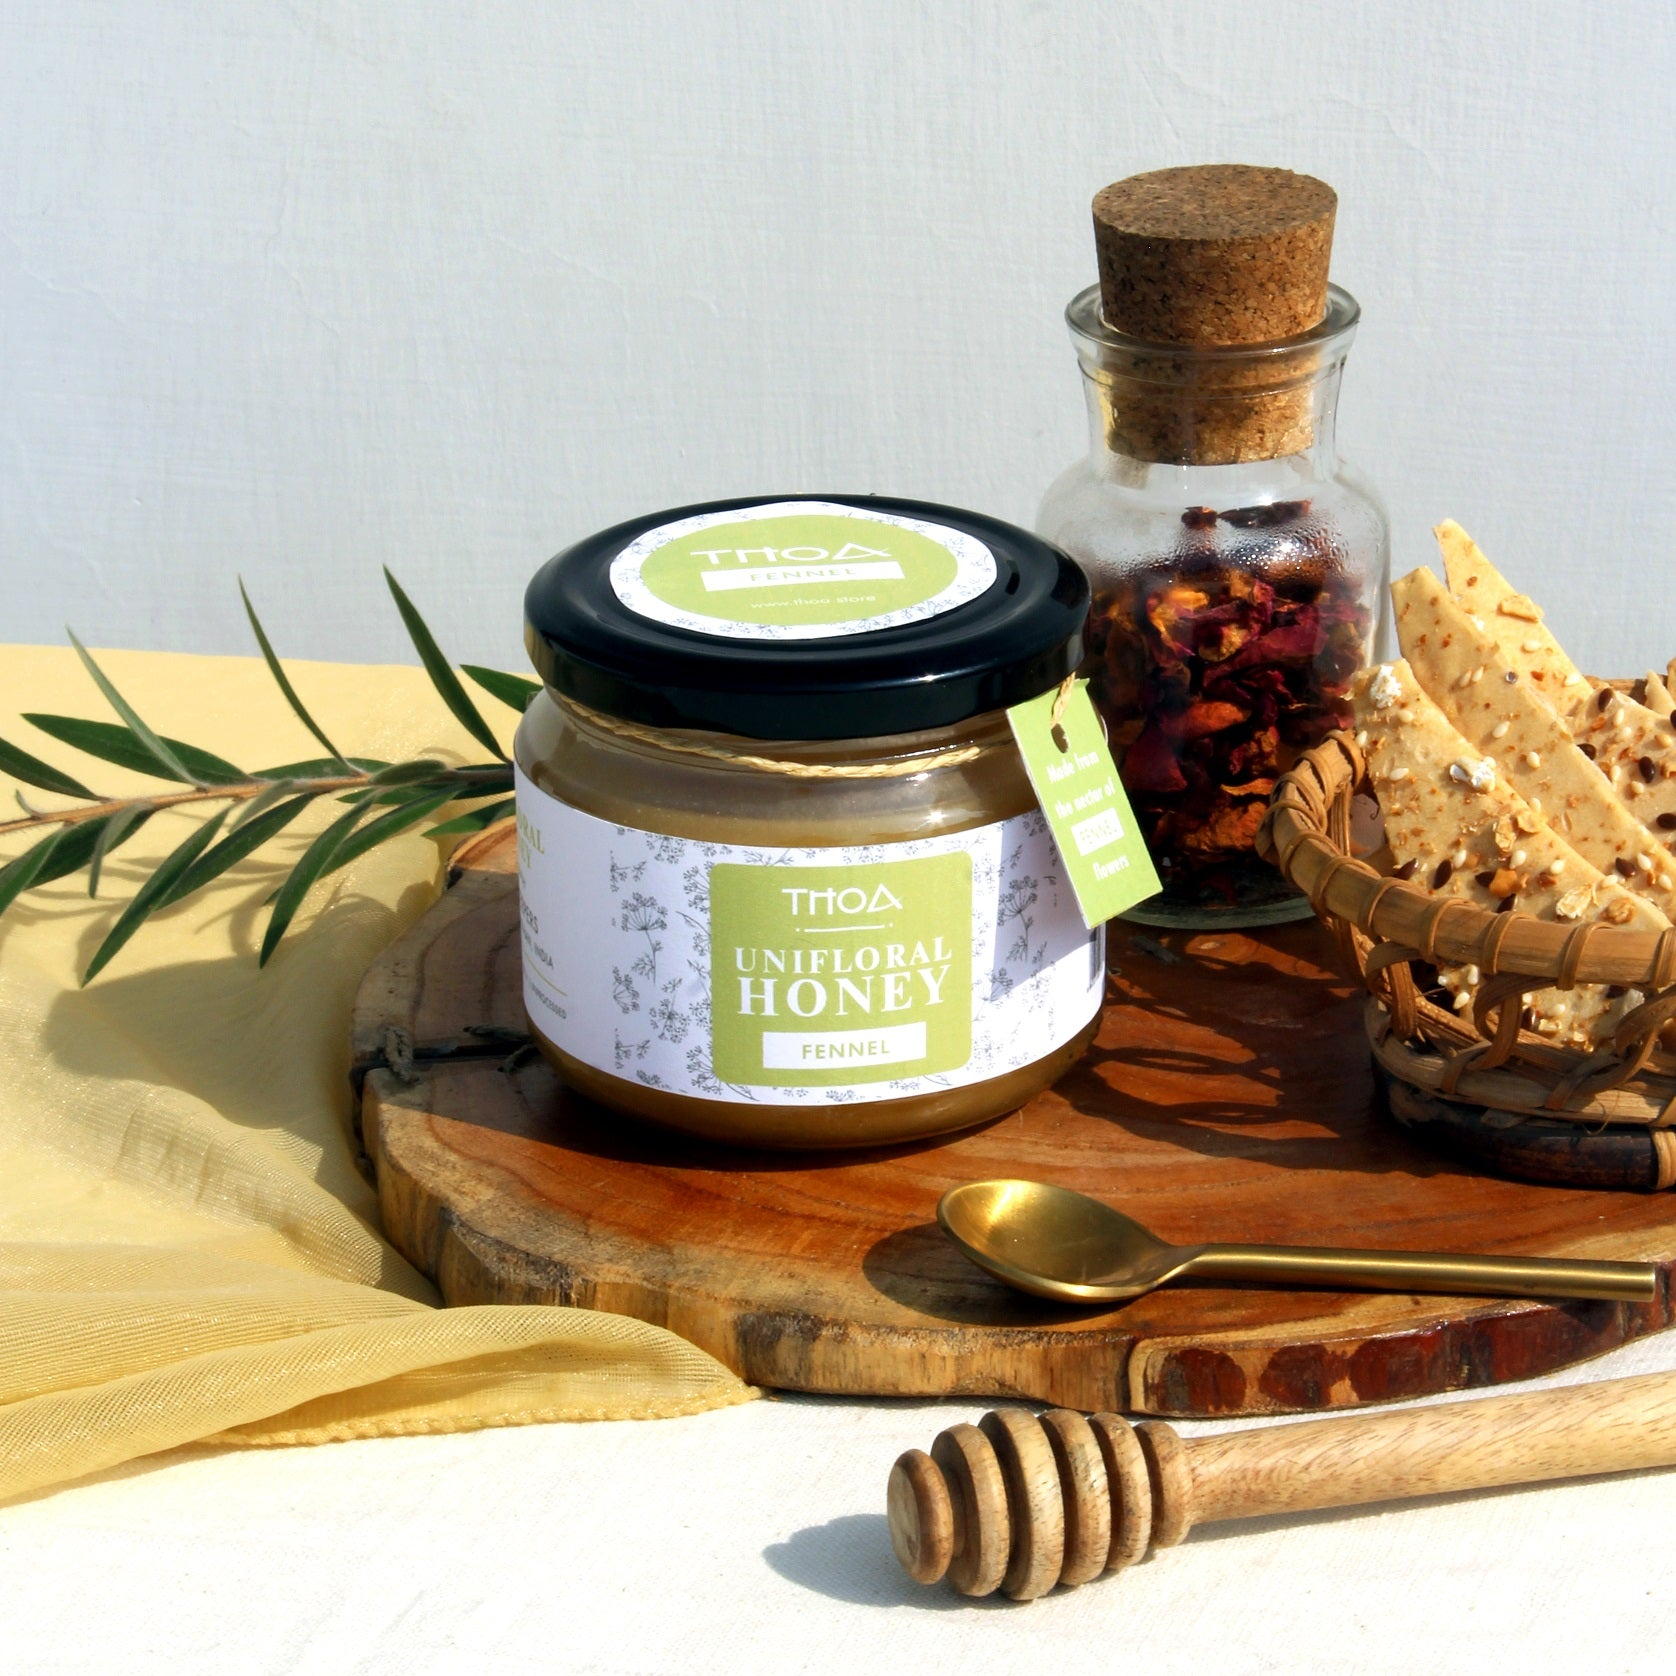 What makes THOA Unifloral Honey the healthiest on earth?